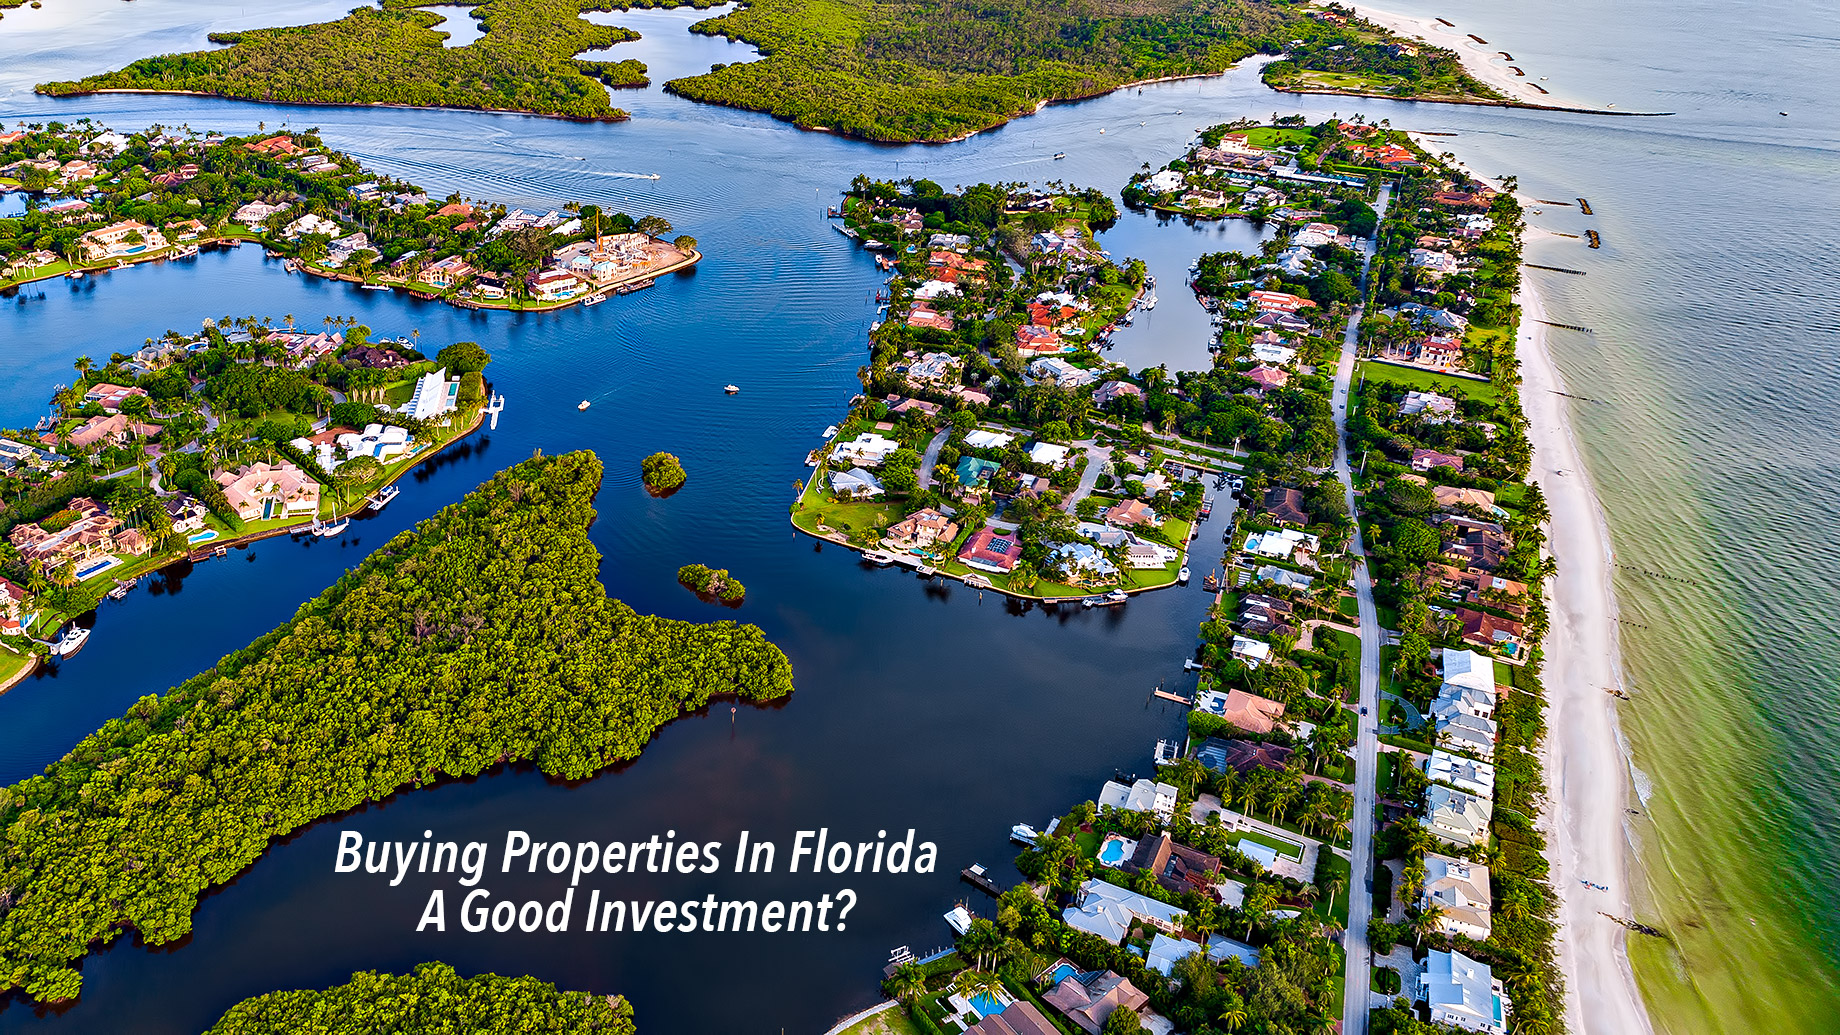 Buying Properties In Florida - A Good Investment?